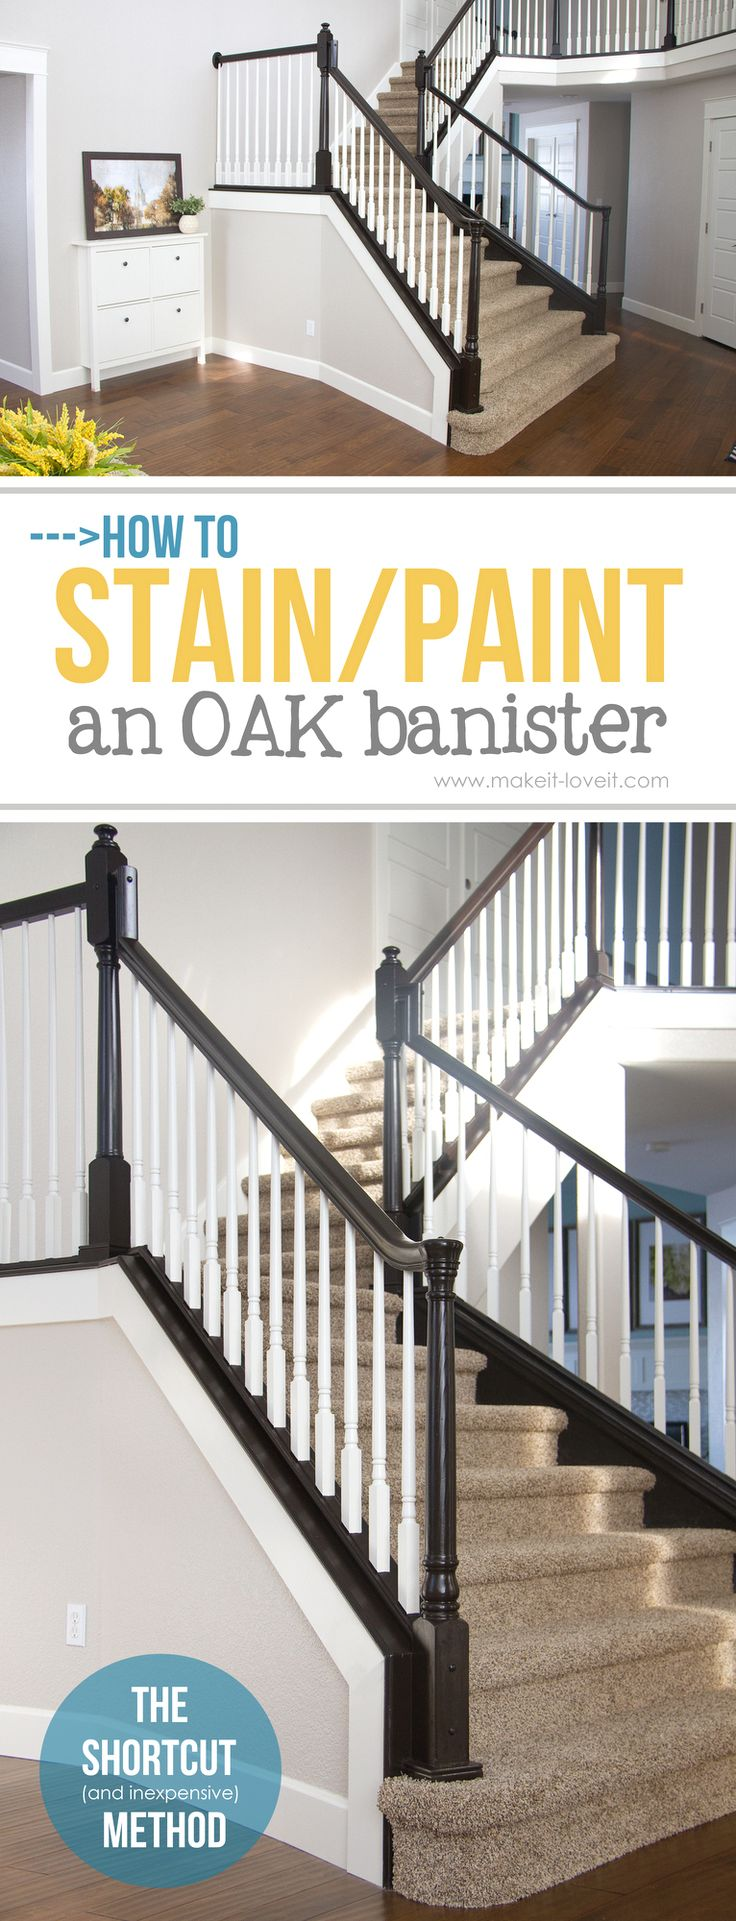 DIY: How to Stain and Paint an OAK Banister, Spindles, and Newel Posts (the shortcut method...no sanding needed!) |via Make It and Love It